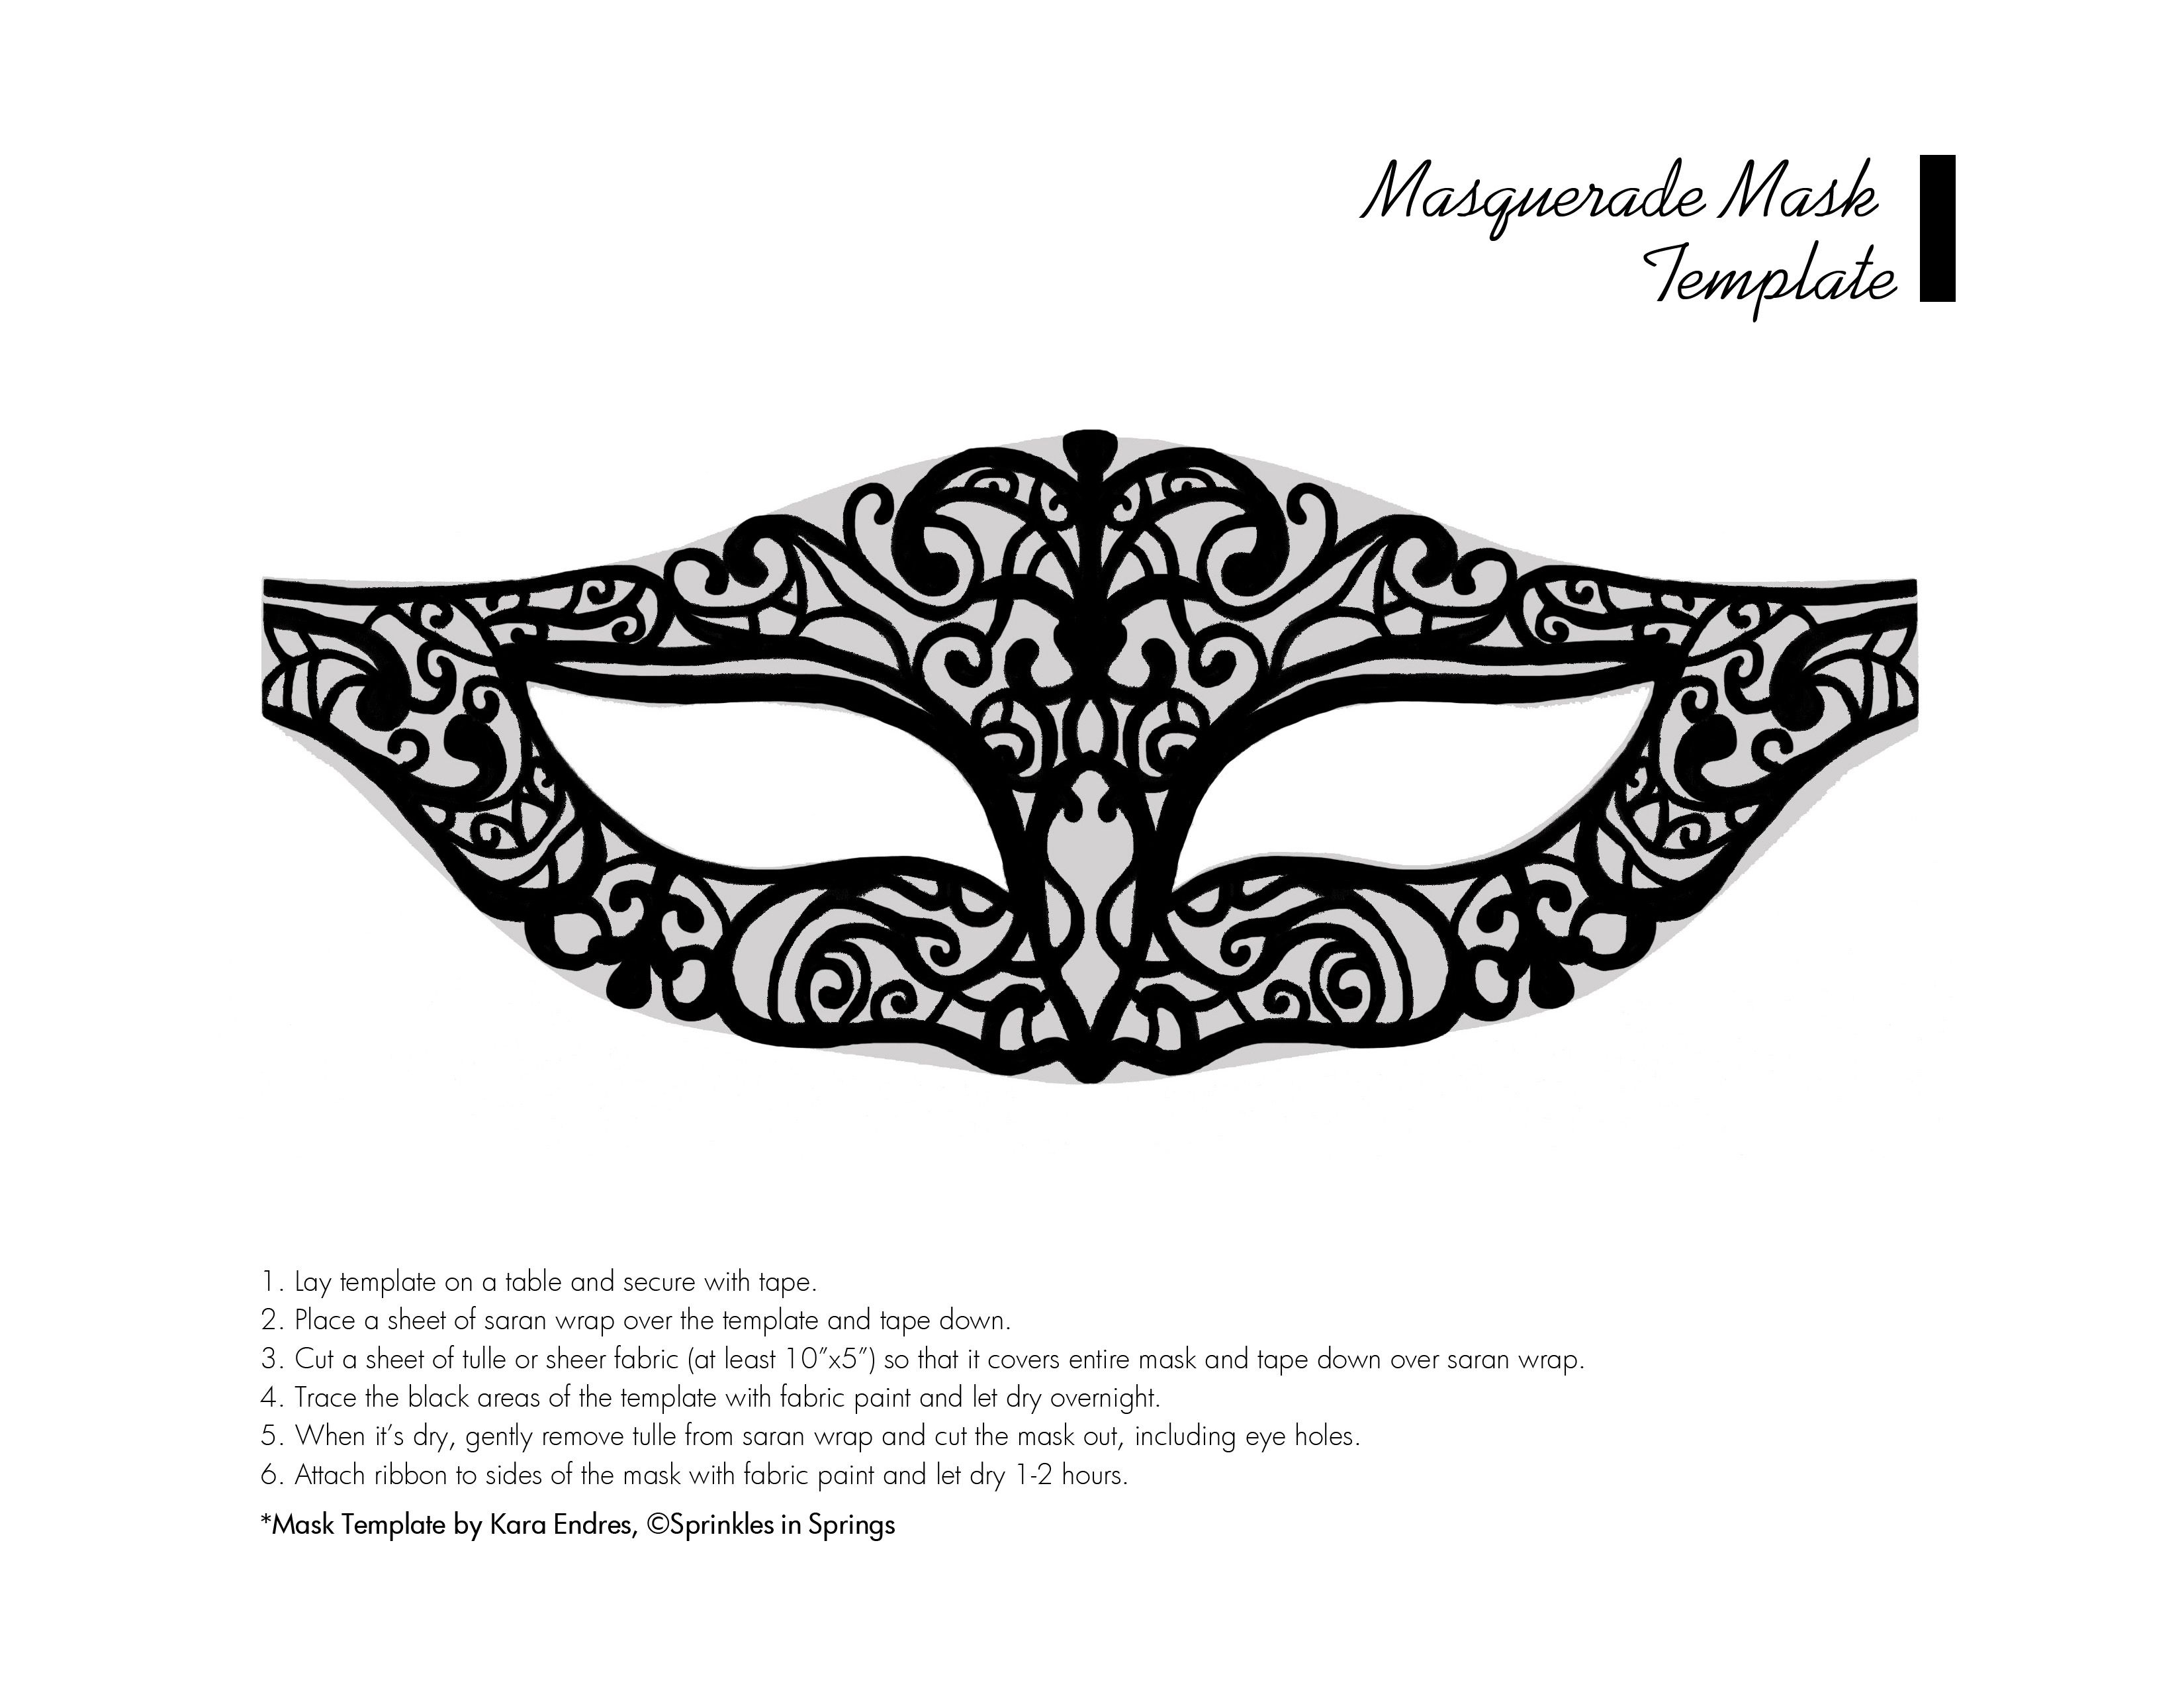 Free Printable Masquerade Masks - Babylon Yahoo! Search Results - Free Printable Masquerade Masks